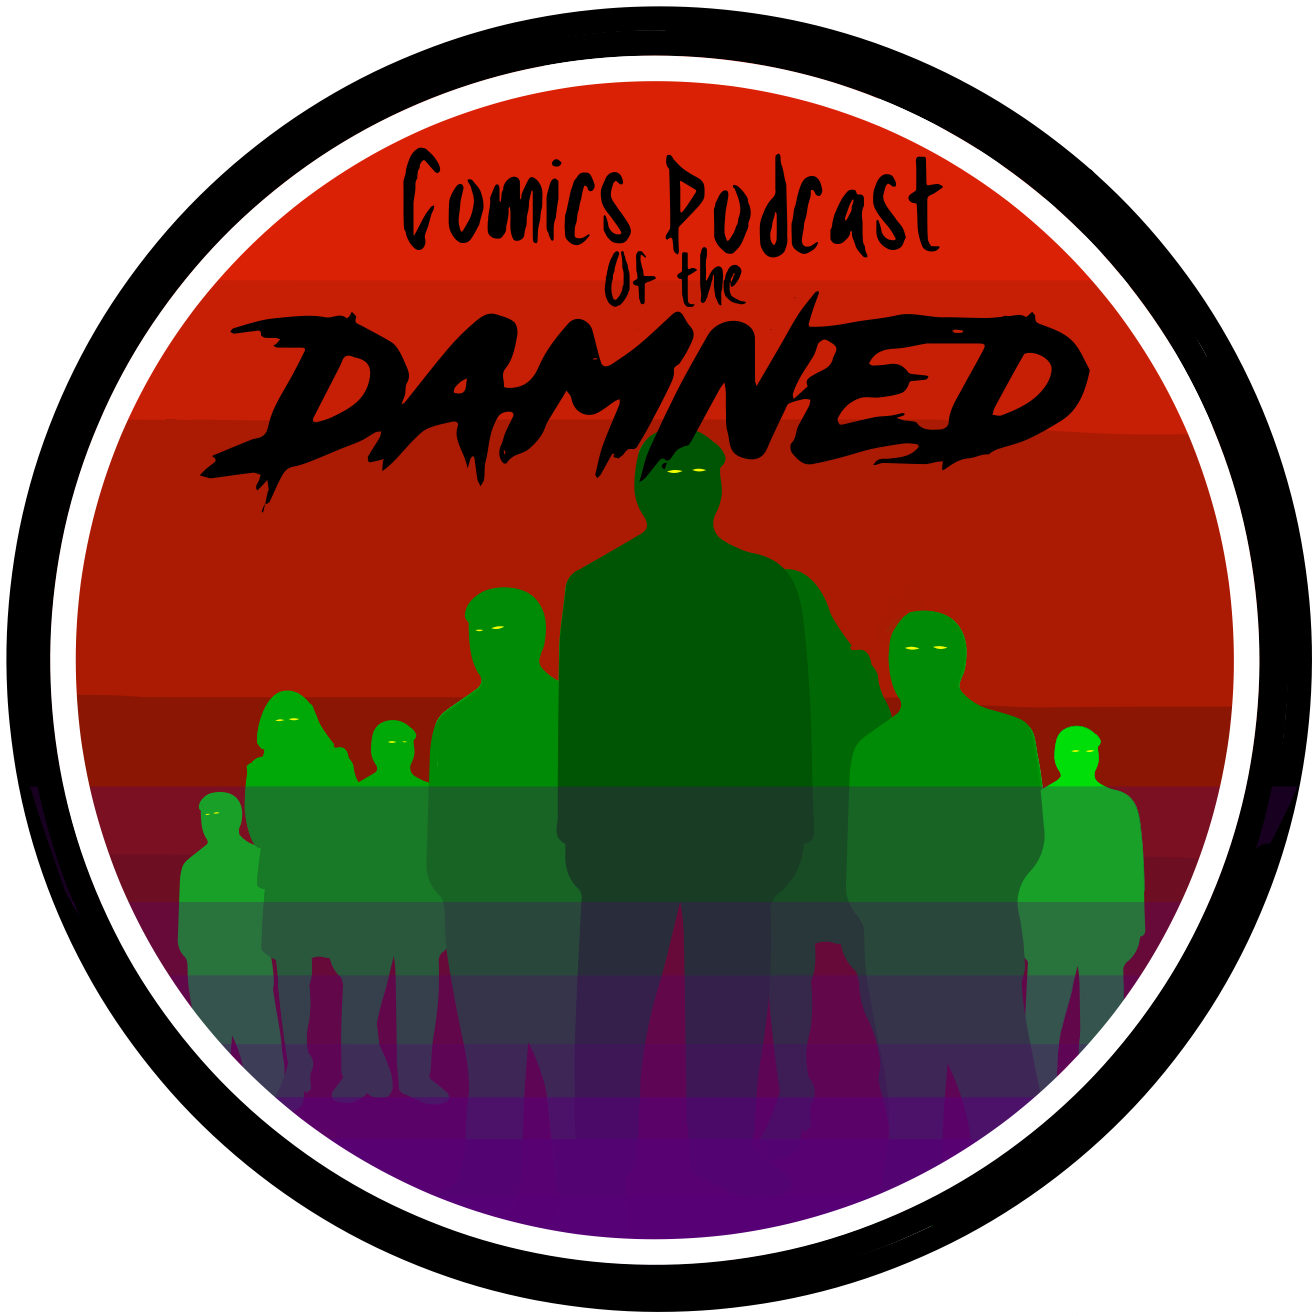 Comics Podcast Of The Damned! show art